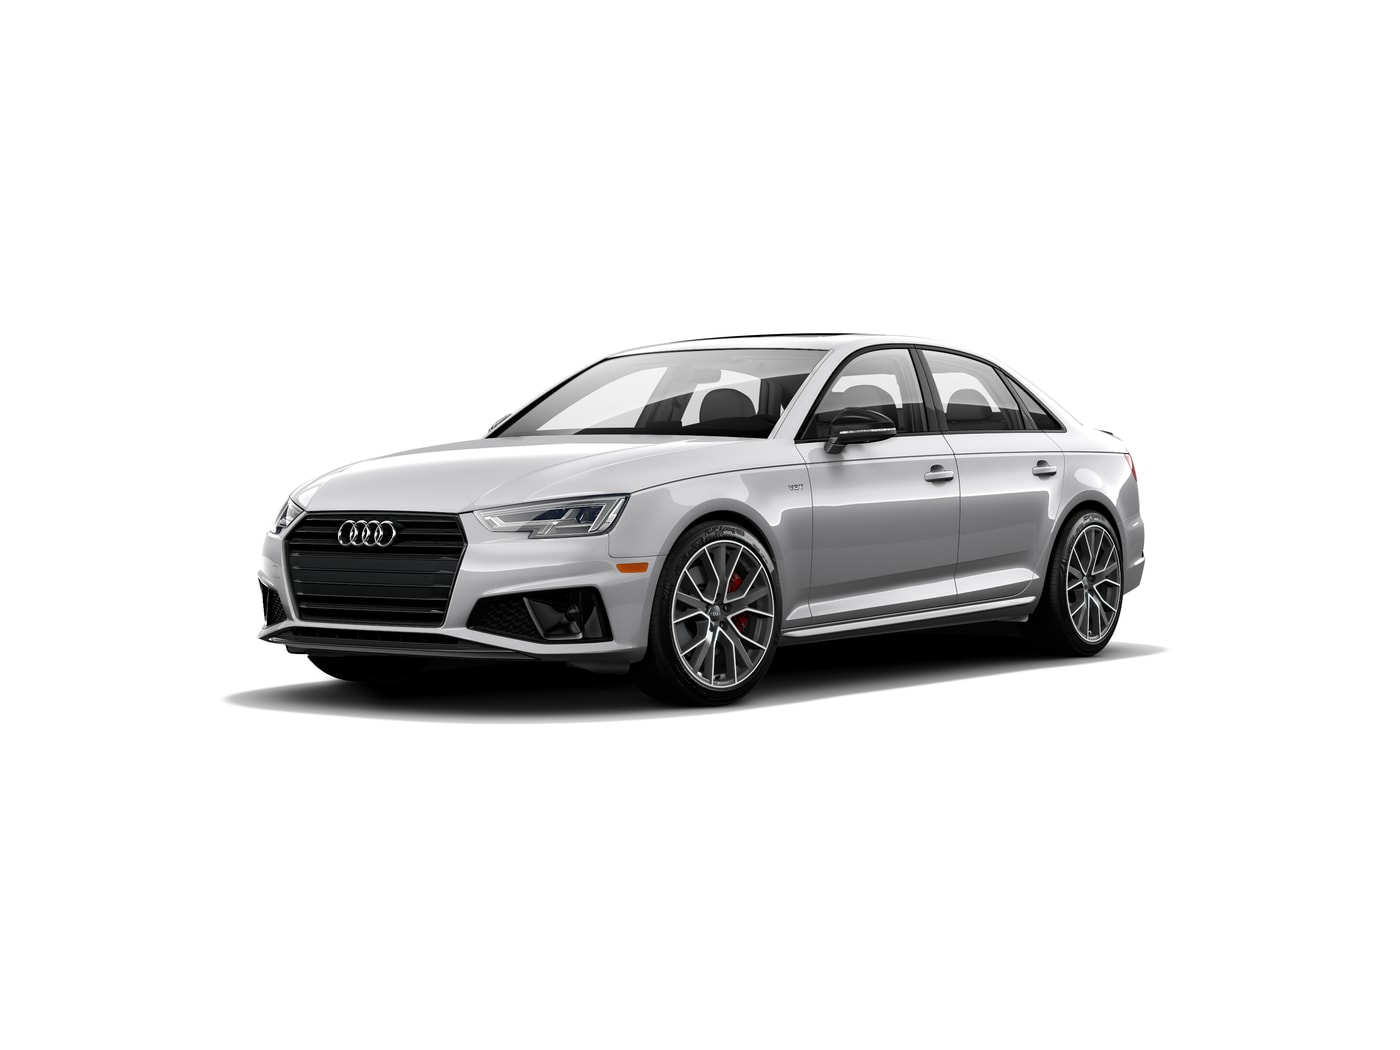 2019 Audi A4 vs. 2019 Buick Regal